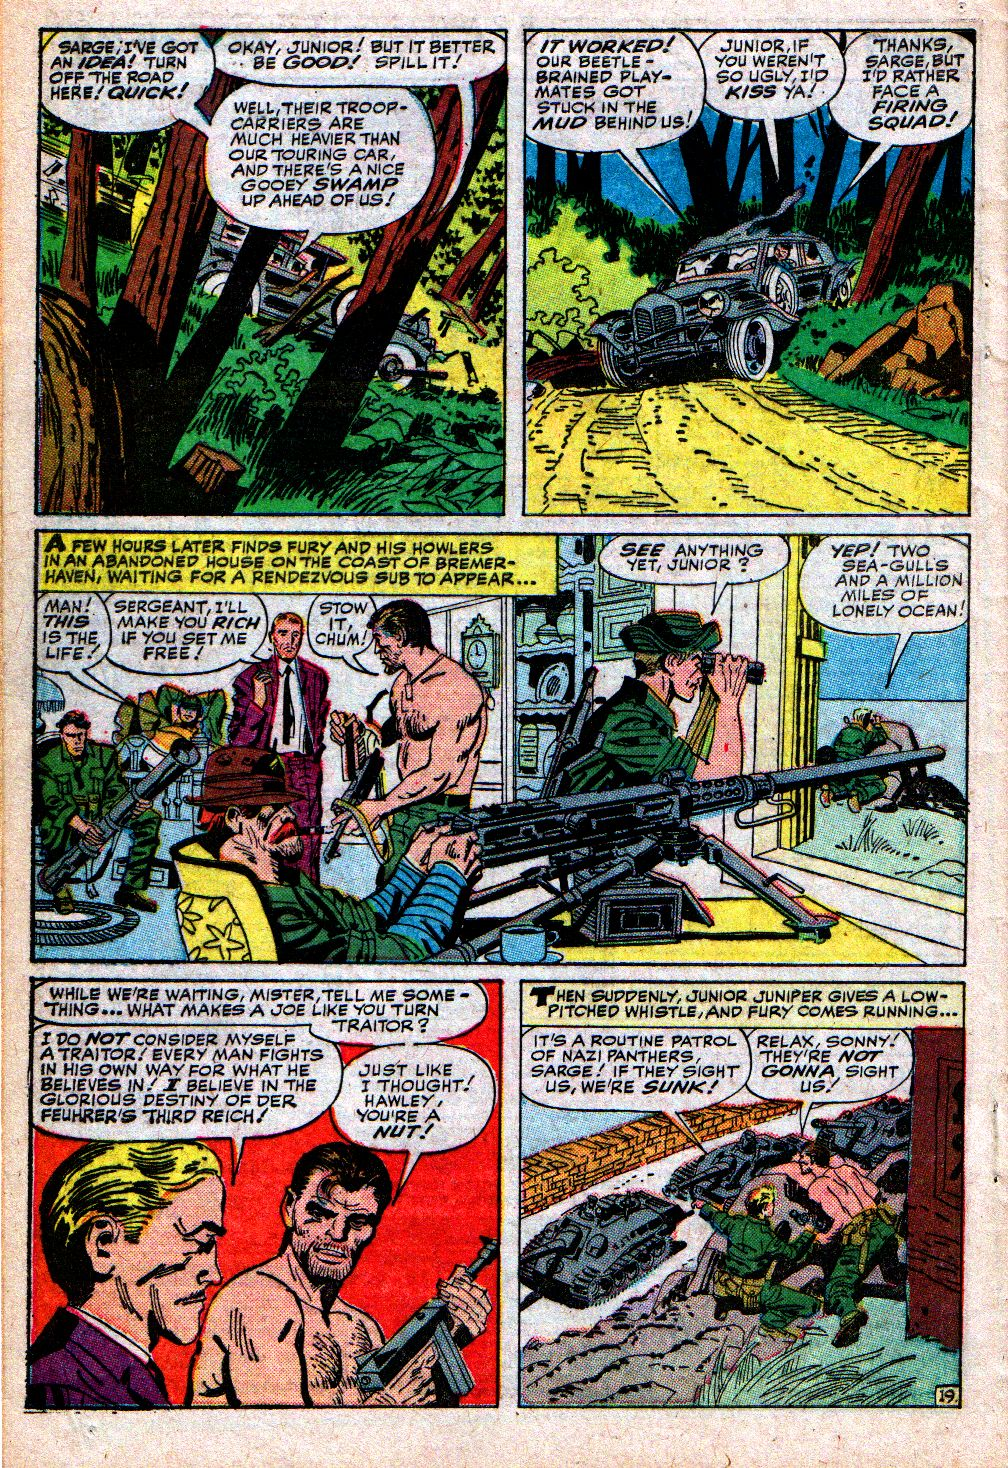 Read online Sgt. Fury comic -  Issue #4 - 28